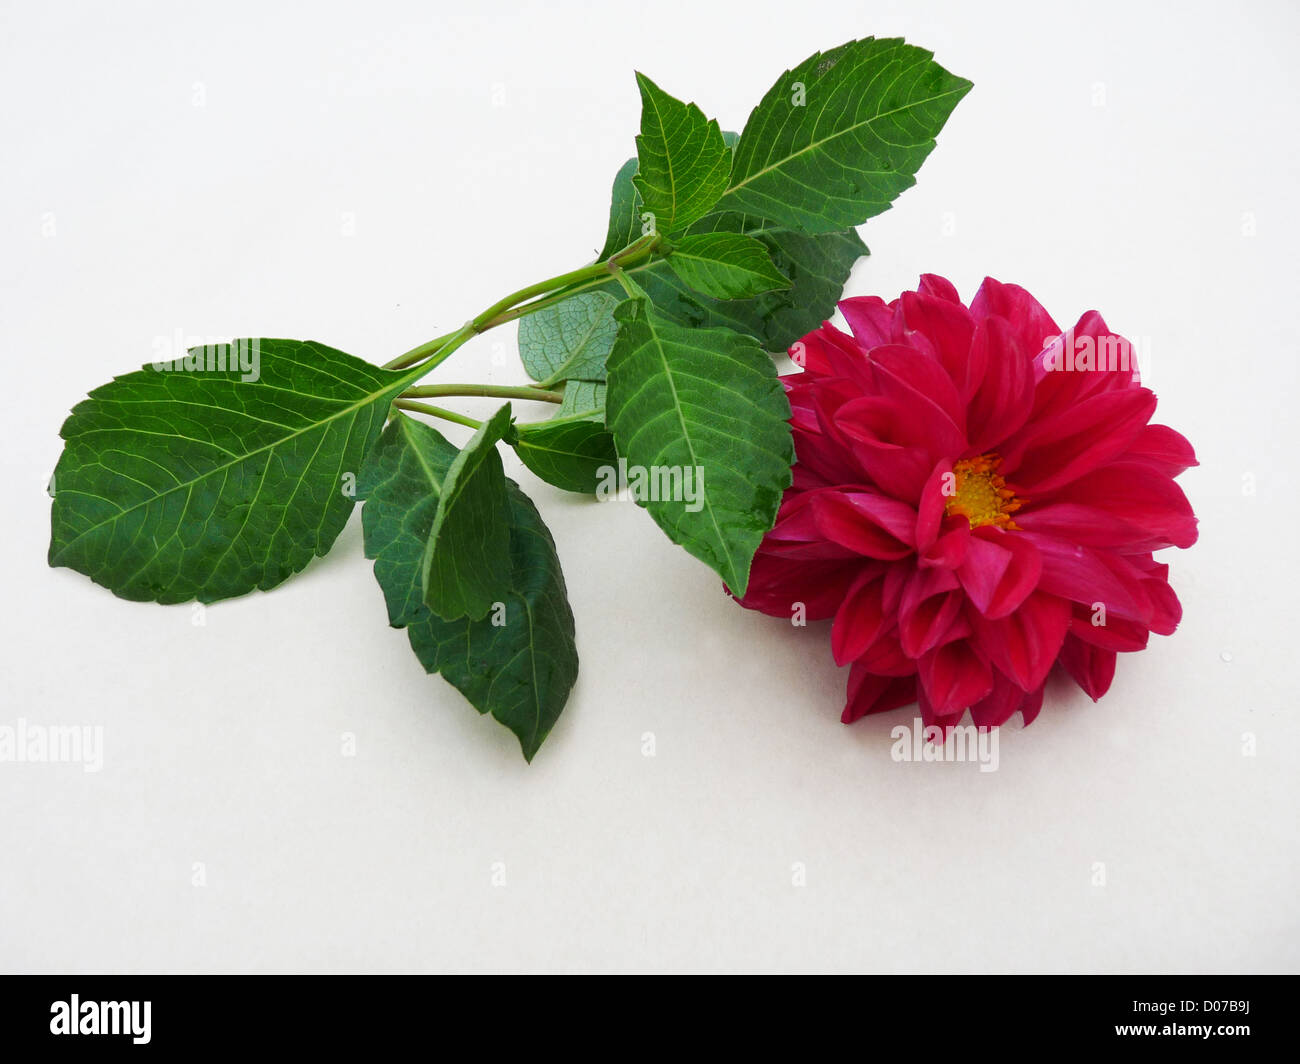 flower; dahlia; one magenta; red; green; leaves; autumn; plants; flora; composition; gift; greeting; isolated; light - Stock Image